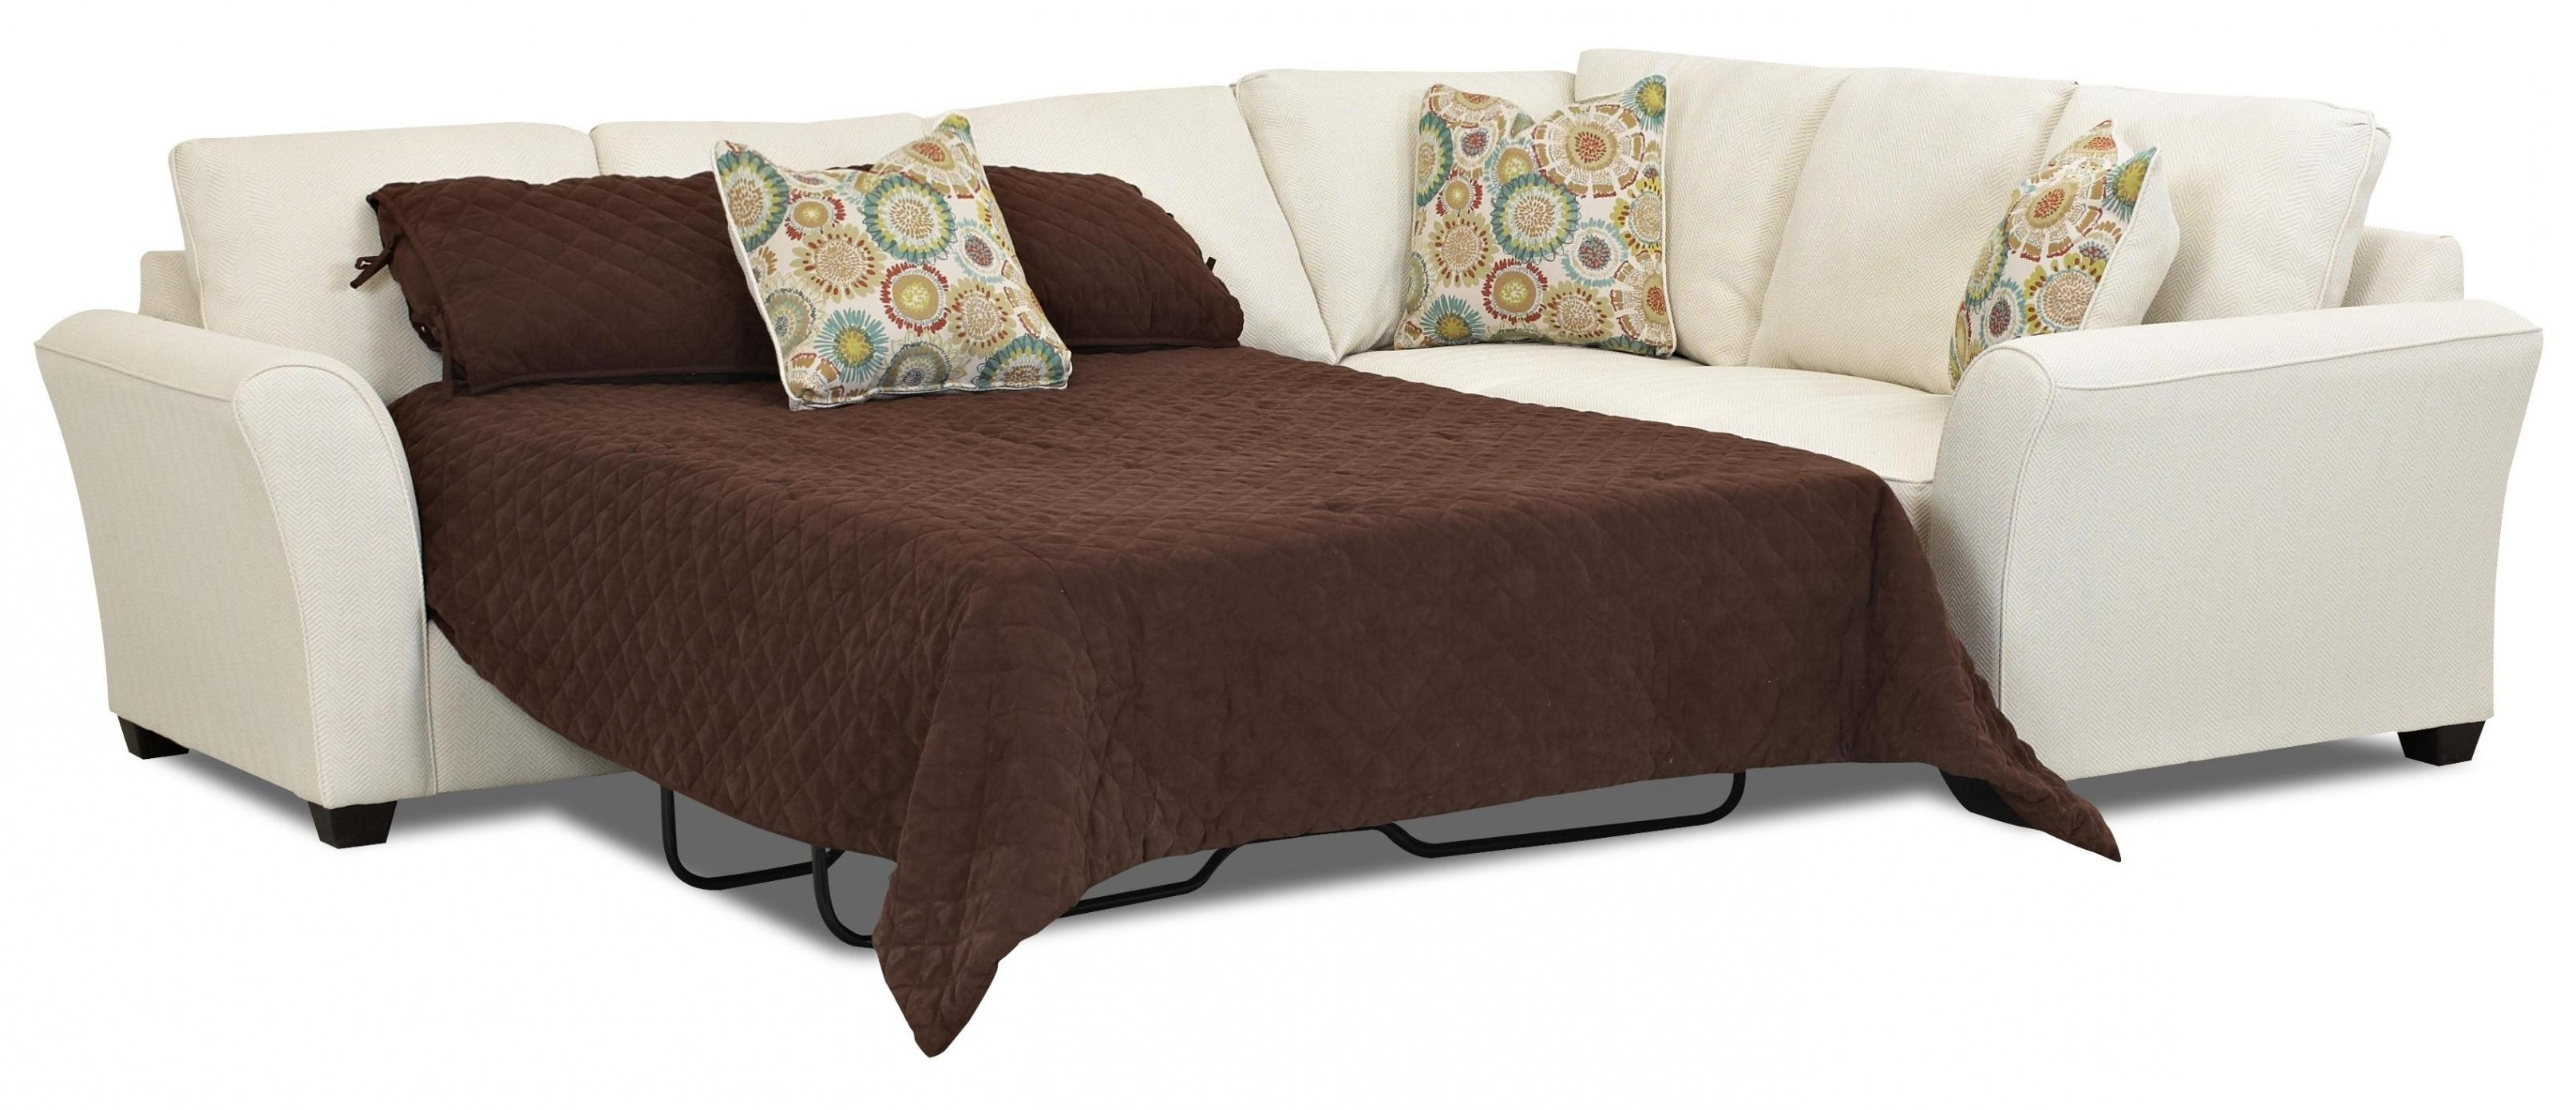 20 photos sectional sleepers sofa ideas for Clarke fabric 2 piece sectional queen sleeper sofa bed